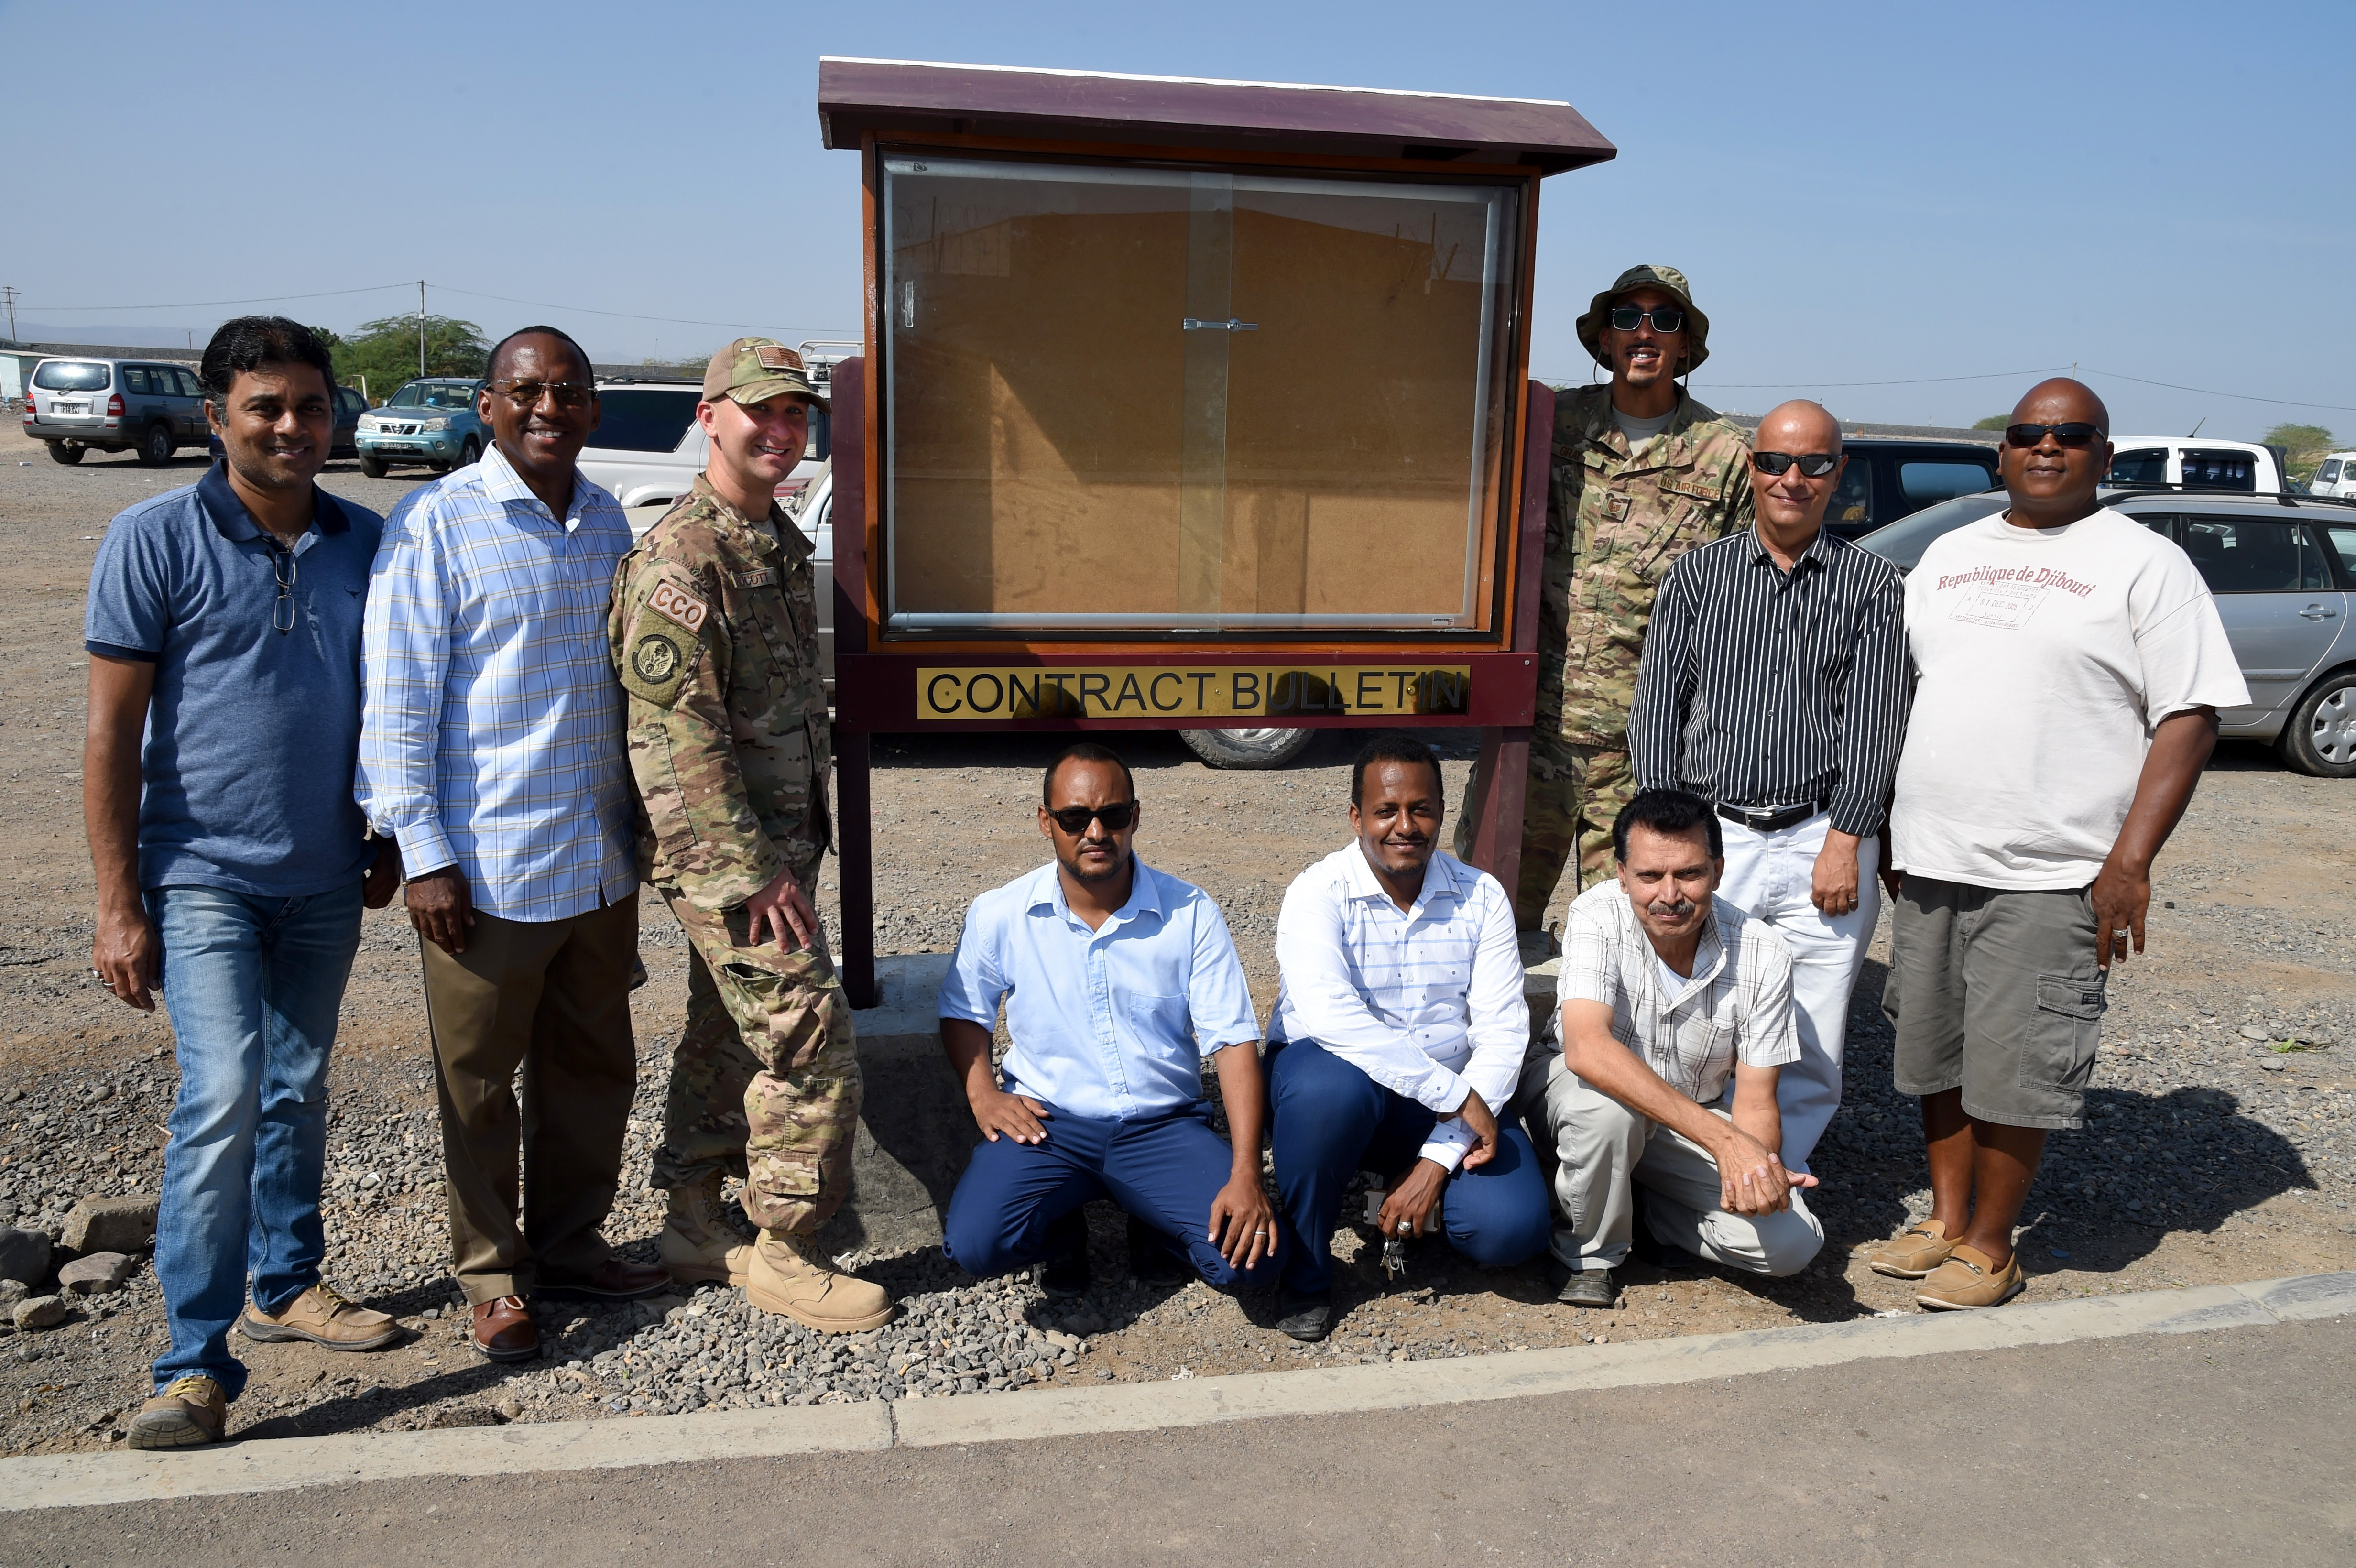 "U.S. Air Force Combined Joint Task Force-Horn of Africa contingency contracting officers, 726th Expeditionary Air Base Squadron, pose with Camp Lemonnier contractors for a photo next to the new contracting bulletin board, Dec. 6, 2016, in Djibouti, Djibouti. The contract bulletin board is posted in a gathering area of the local community and provides Djiboutian businesses with easier access to information and contacts for contracting opportunities. This project aligns with the ""Djiboutian First"" legislation, which supports the economy of Djibouti by providing qualified businesses with contractual preference. (U.S. Air National Guard photo by Staff Sgt. Penny Snoozy)"